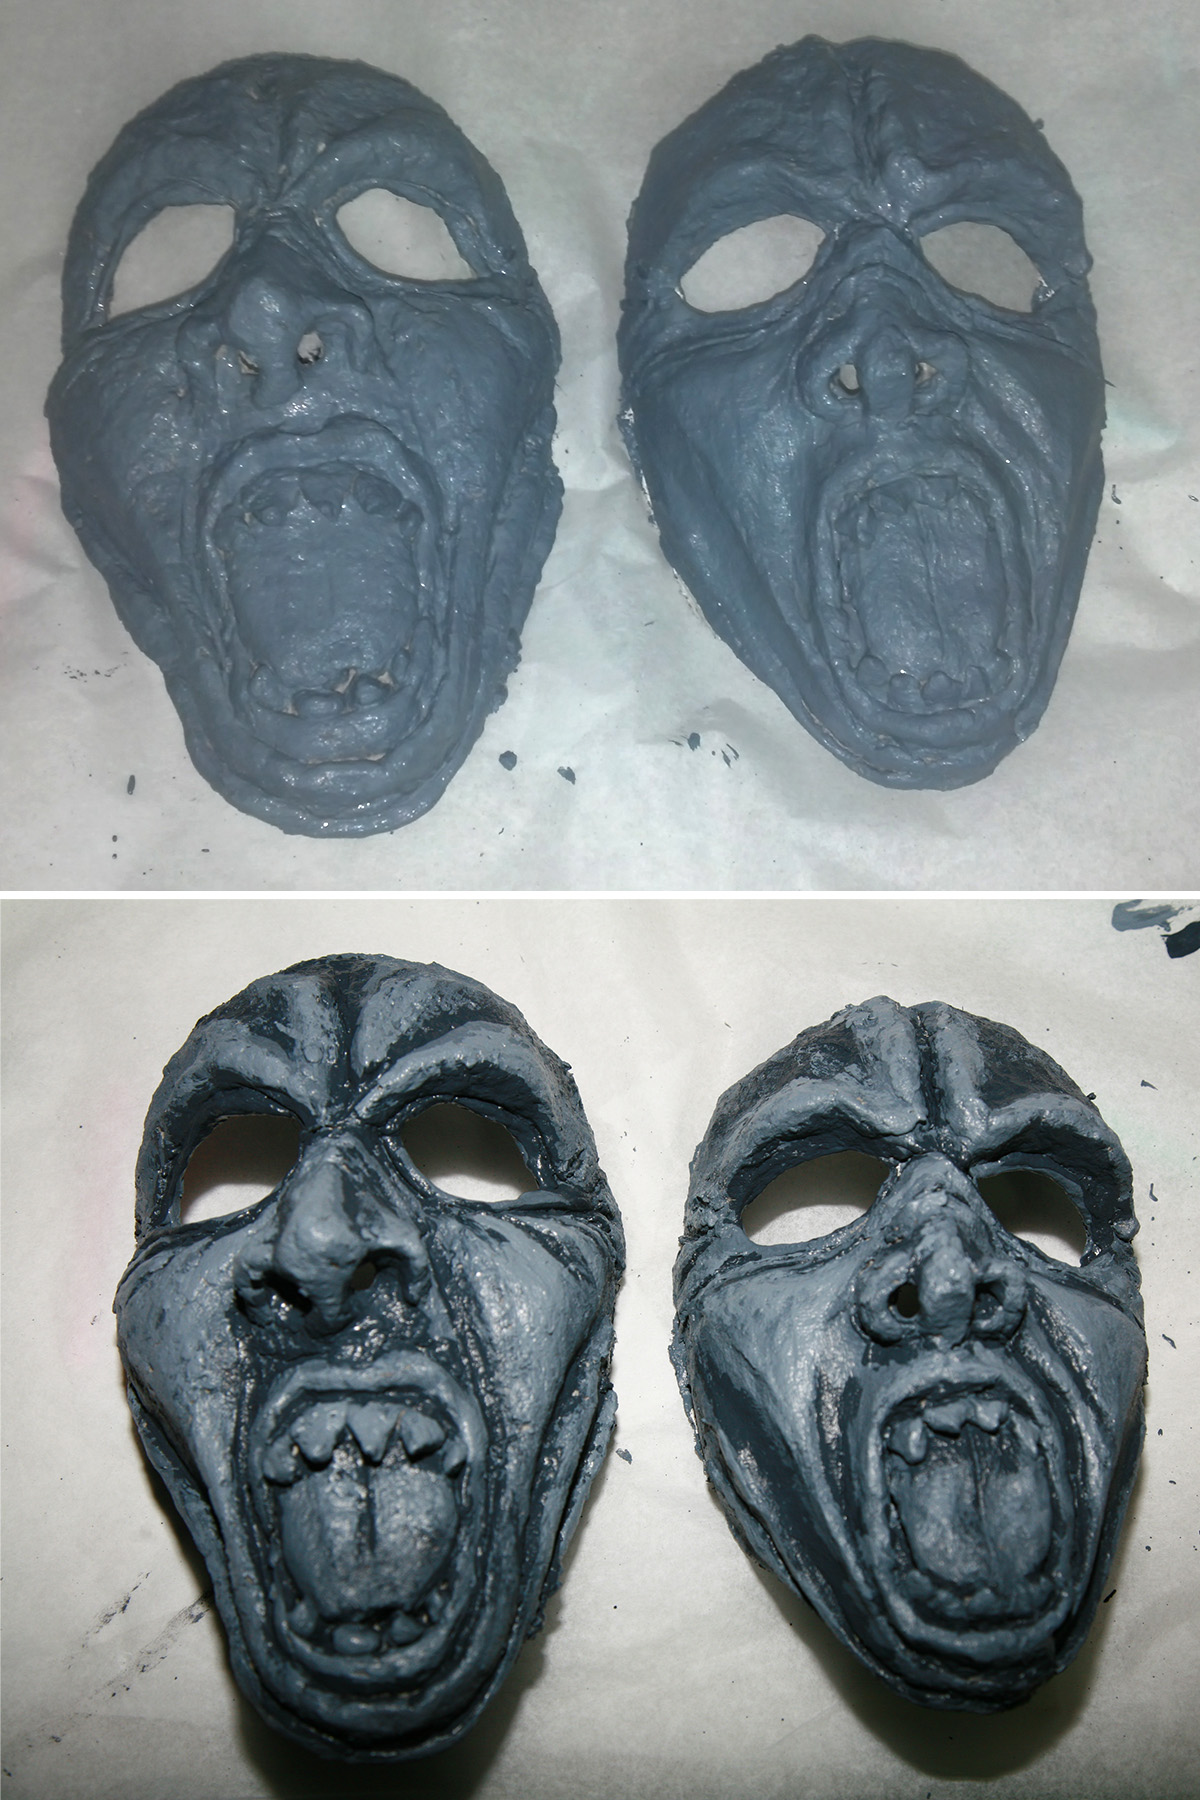 A two part image showing 2 grotesque looking face masks painted grey, then detailed with darker grey shadowing.